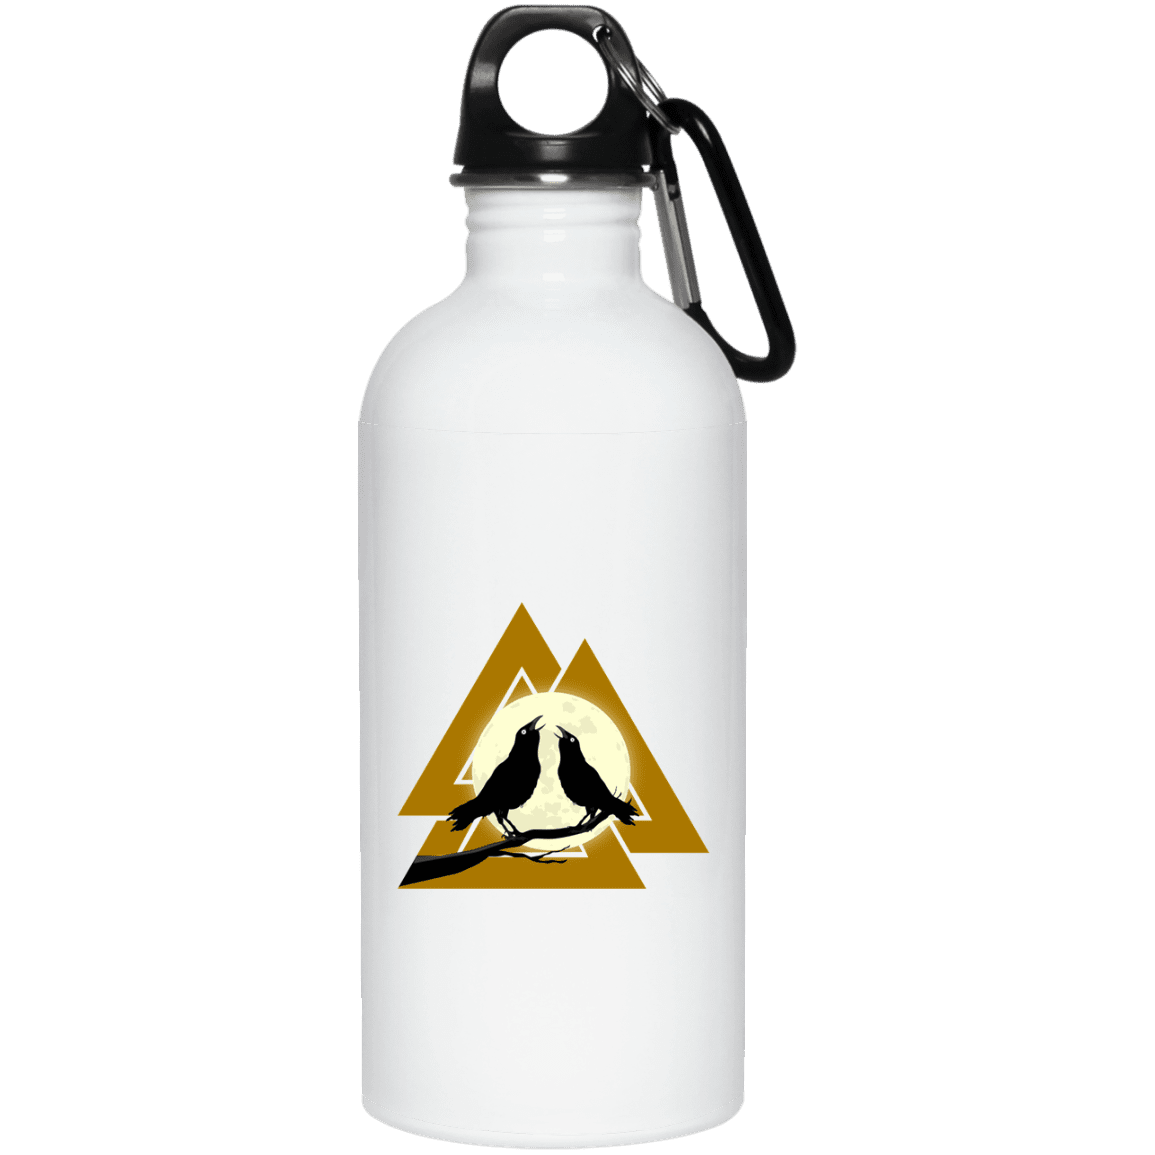 Valknaut Stainless Steel Water Bottle